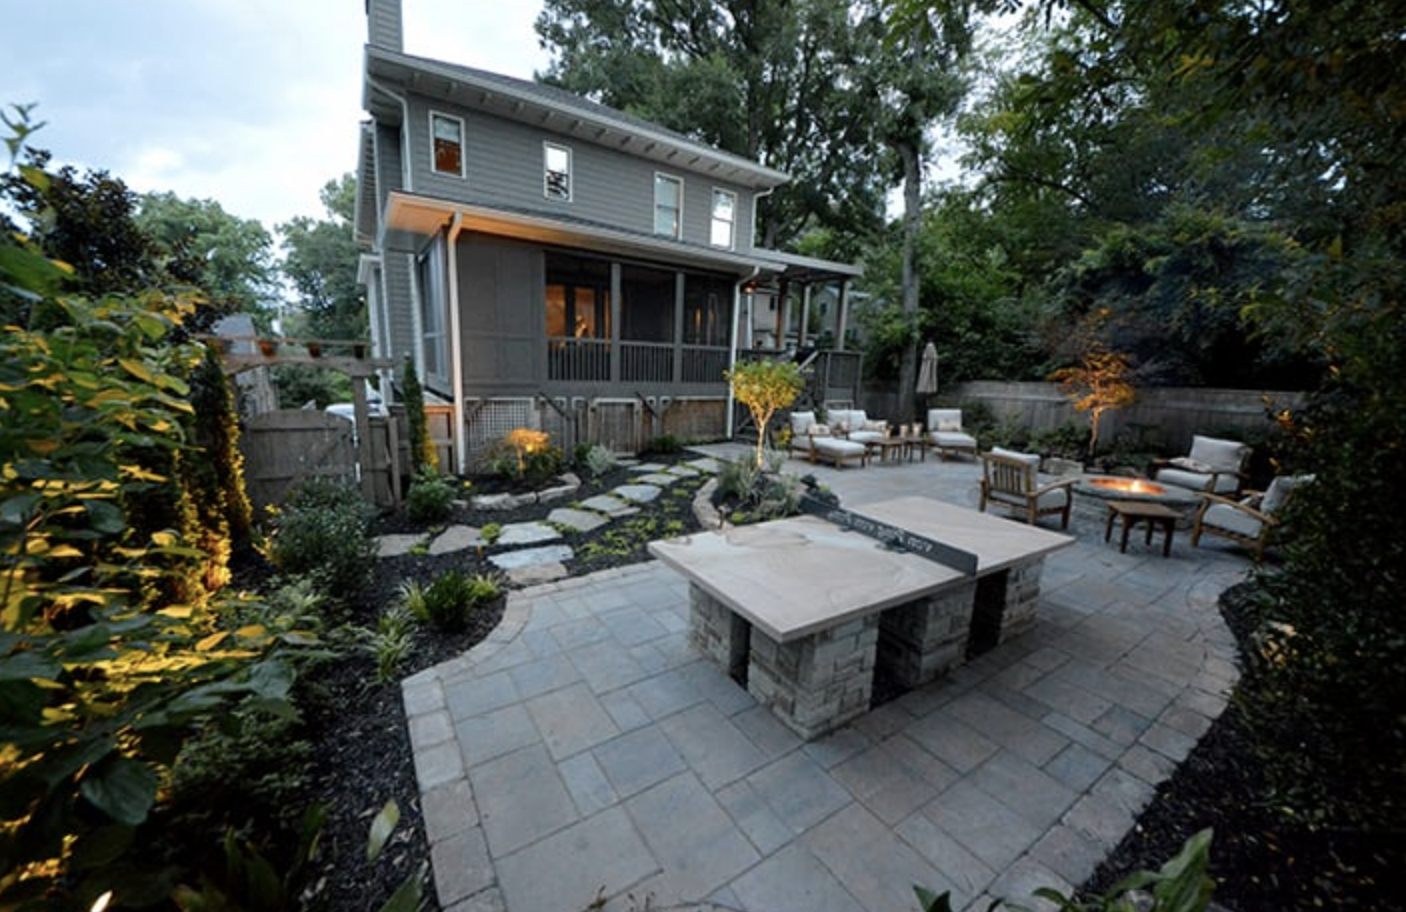 stone outdoor entertaining space in backyard landscape with table tennis, outdoor furniture, and outdoor fire pit